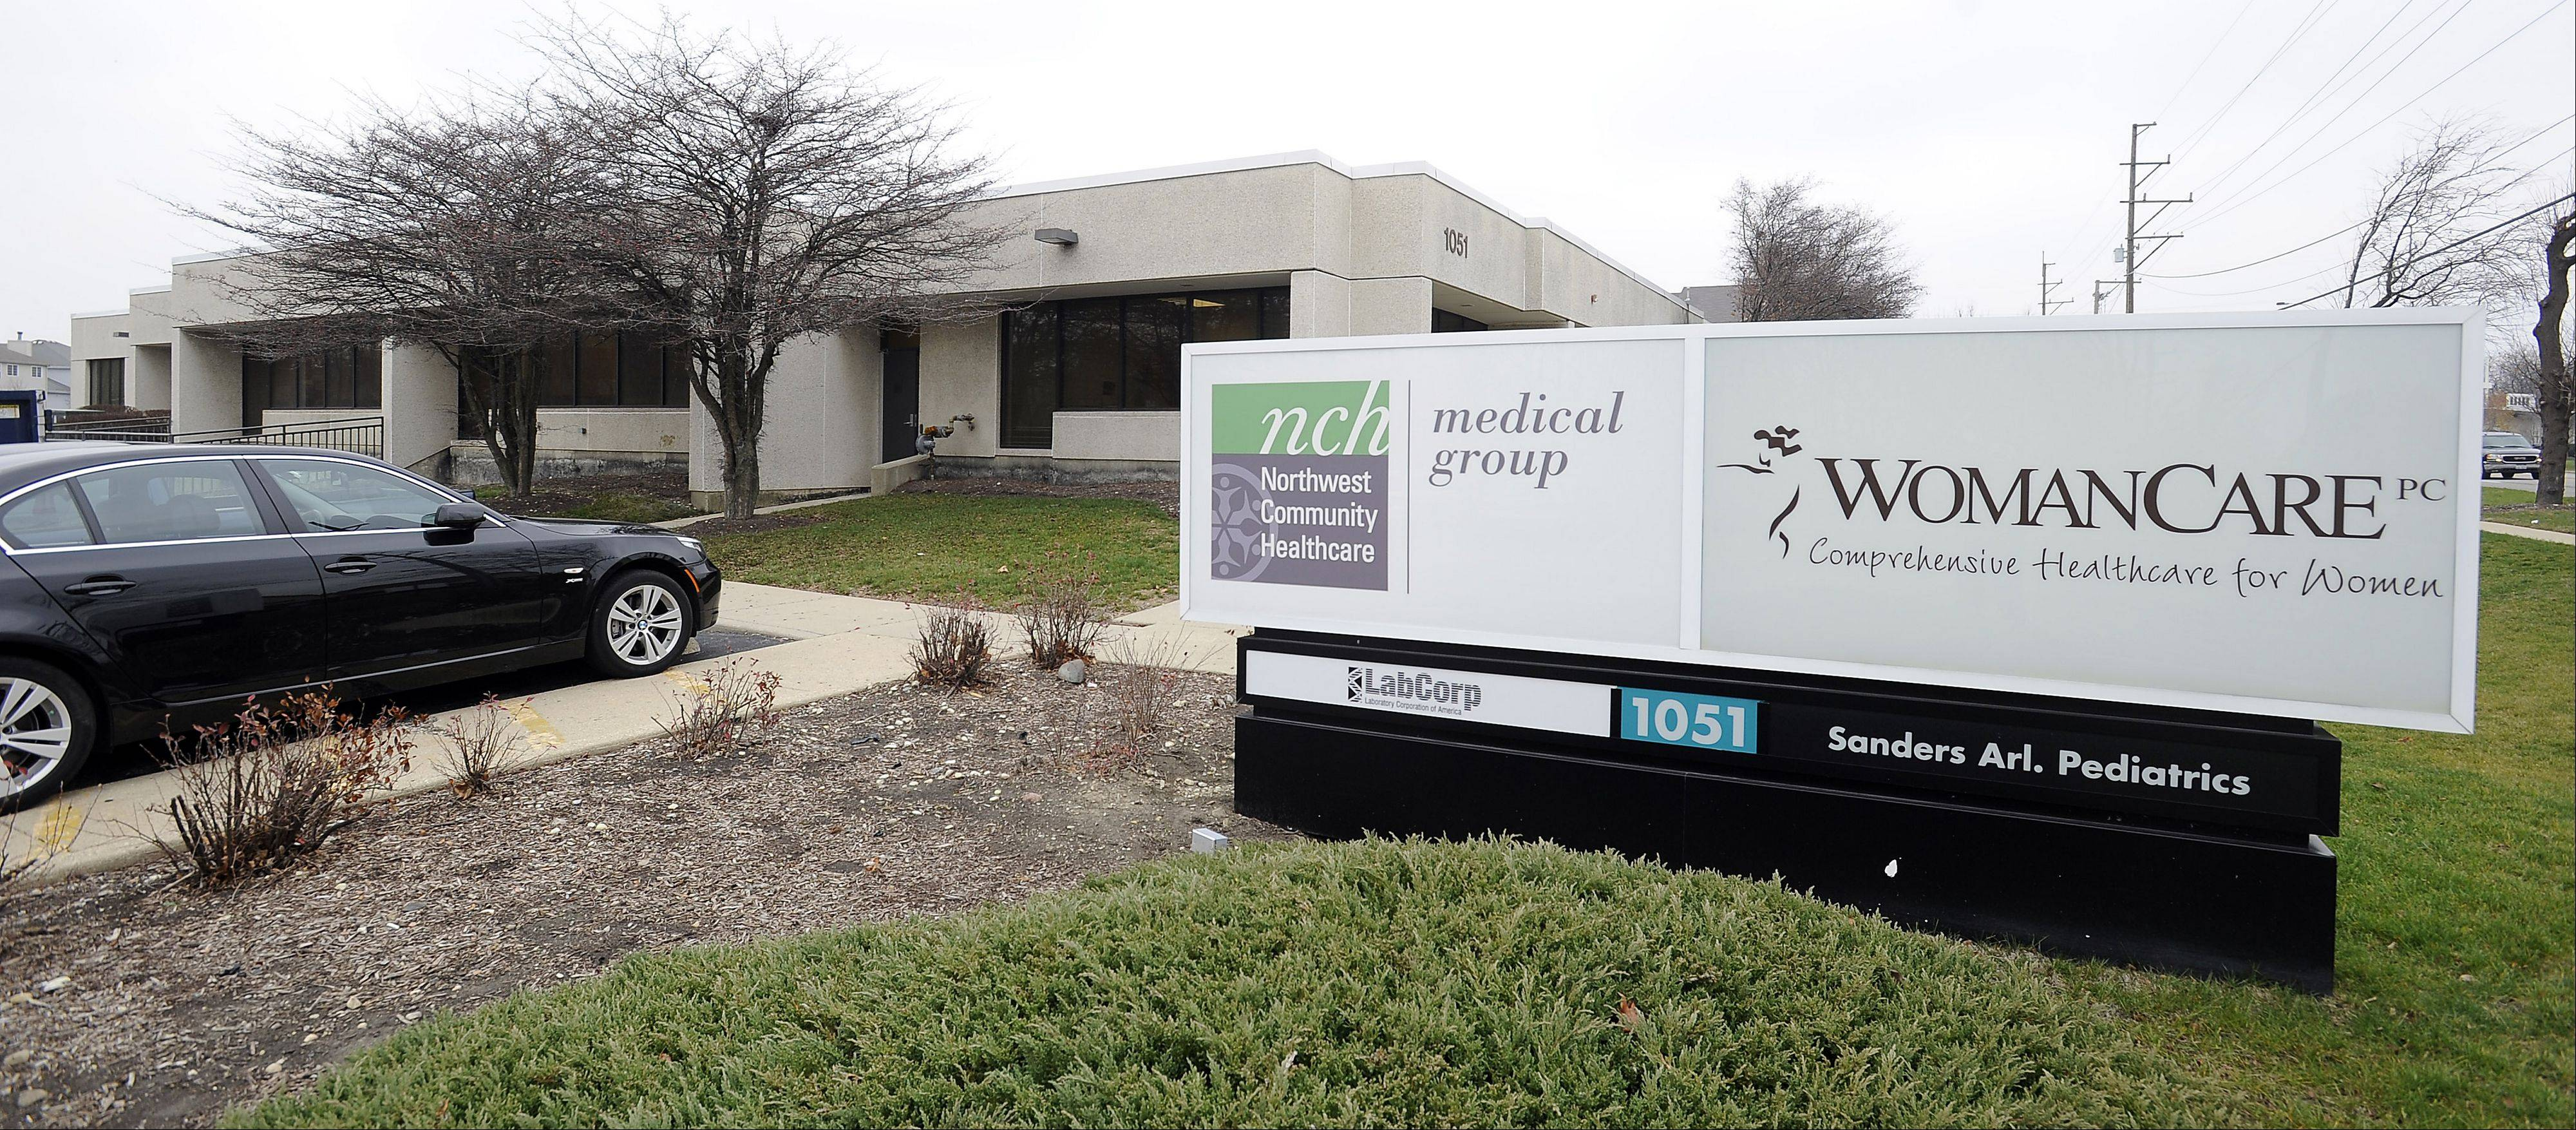 Despite opposition from some of its neighbors, Arlington Heights trustees approved an expansion that will double the size of the medical office building at 1051 W. Rand Road.